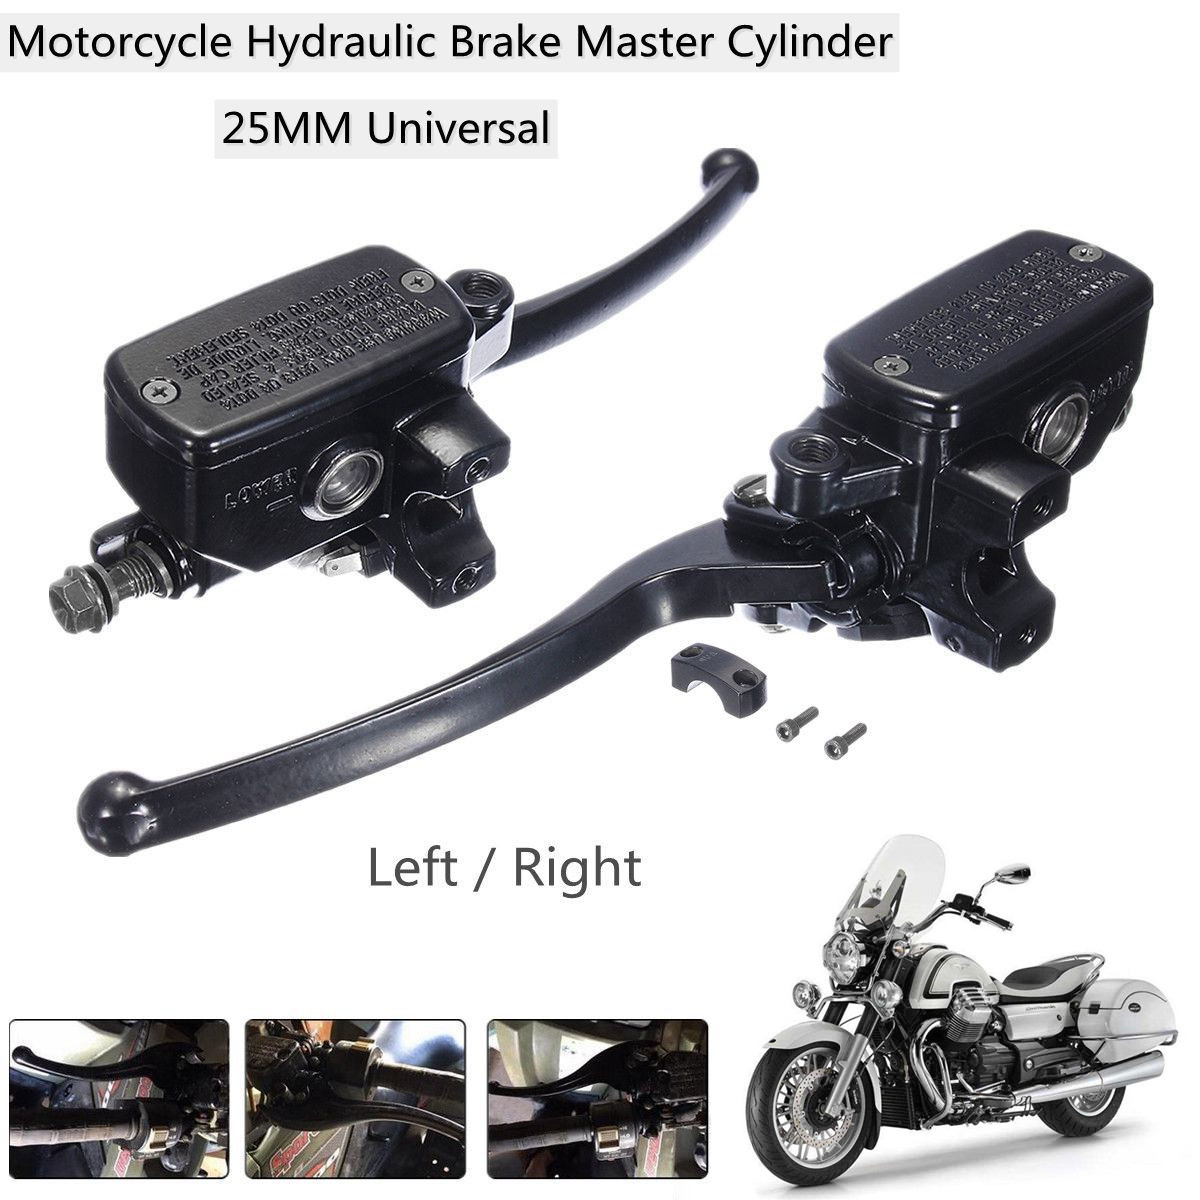 1 Inch 25MM Left Right Universal Motorcycle Brake Master Motorbike Cylinder Hydraulic Pump Clutch Lever цены онлайн